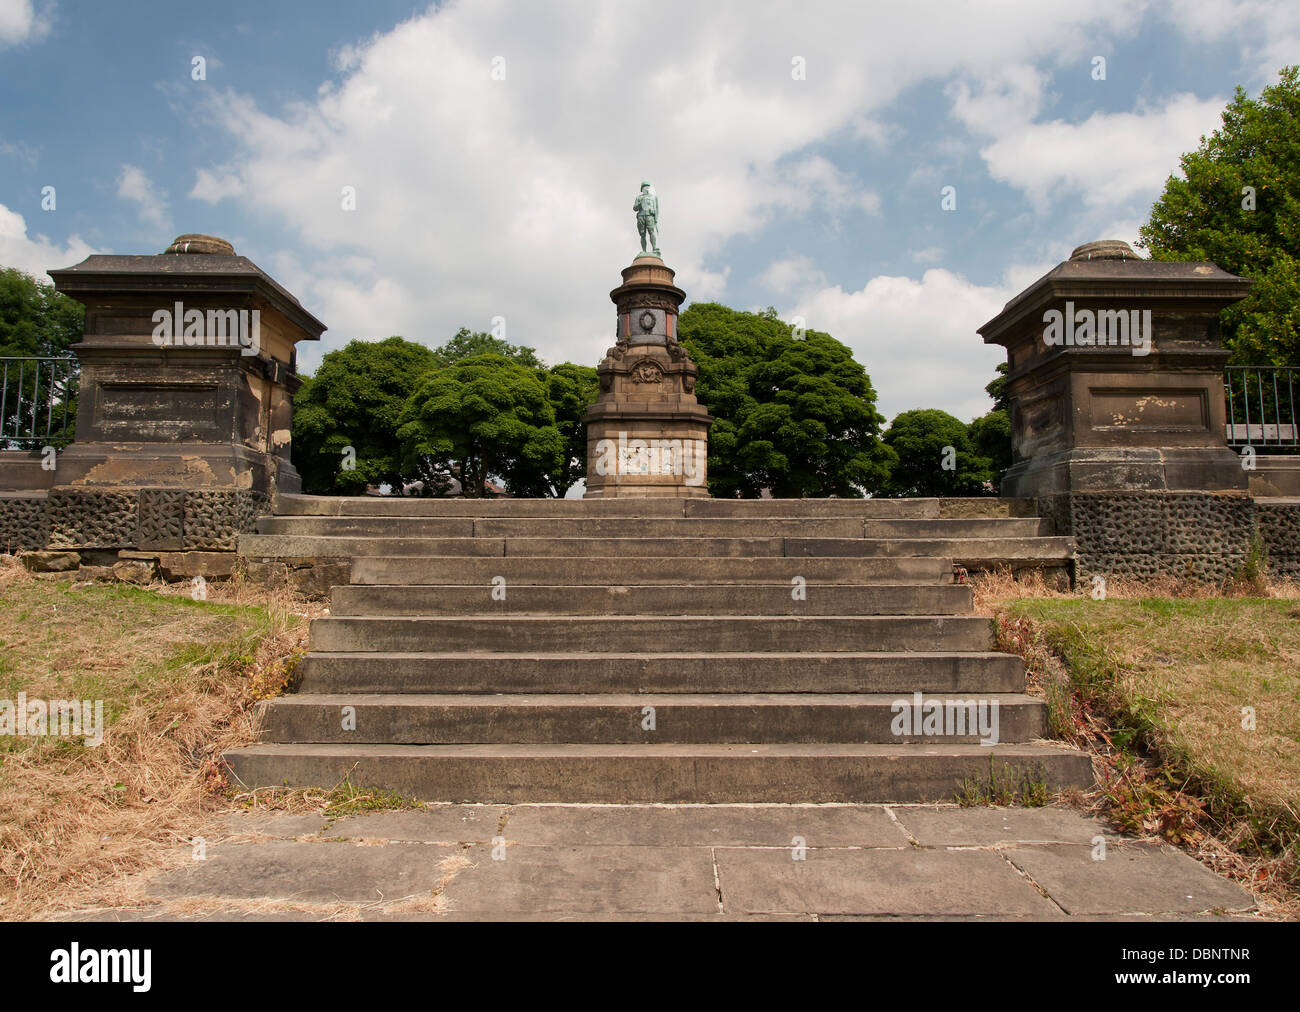 memorial statue to soldiers killed in the boer war, - Stock Image